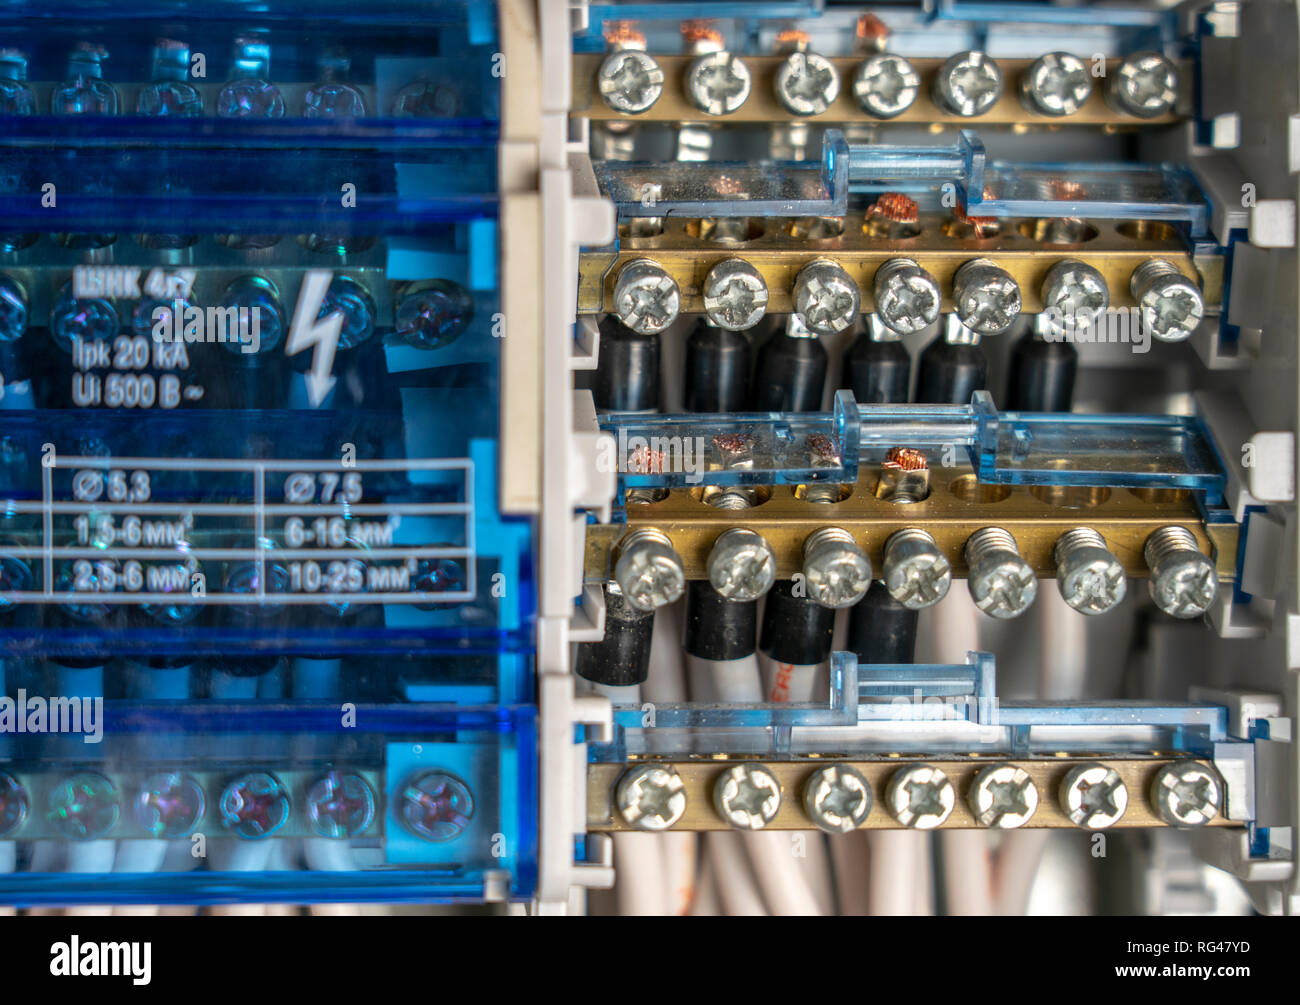 Terminals, contacts, circuit breakers wiring in electrical switchboard providing a safe supply of electricity - Stock Image